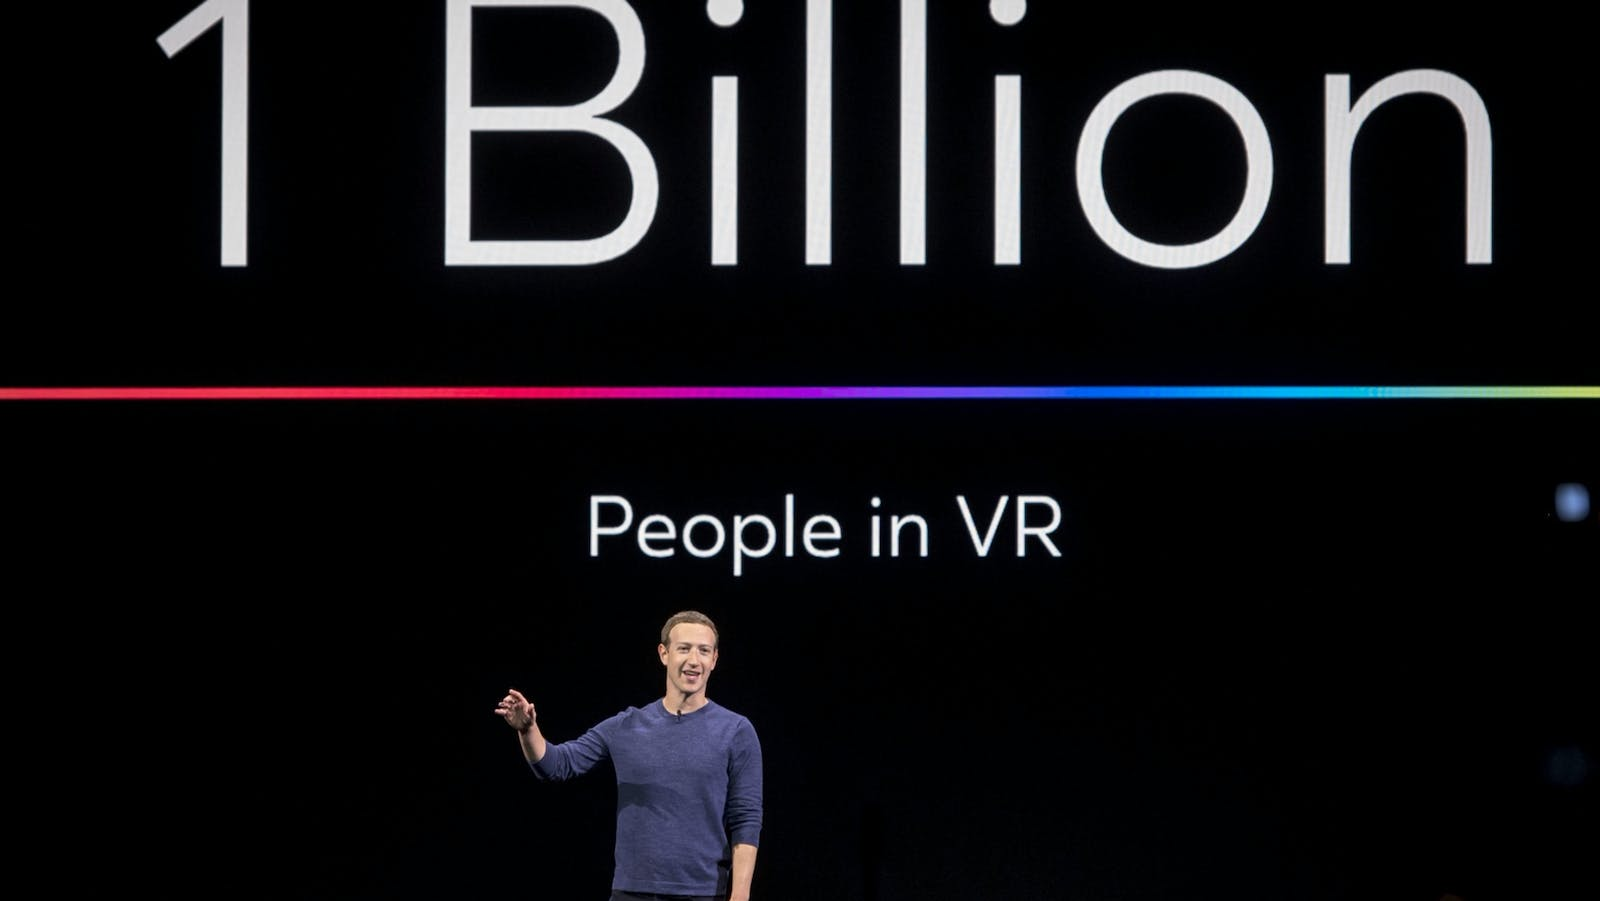 Facebook CEO Mark Zuckerberg at an Oculus event in 2018. Photo by Bloomberg